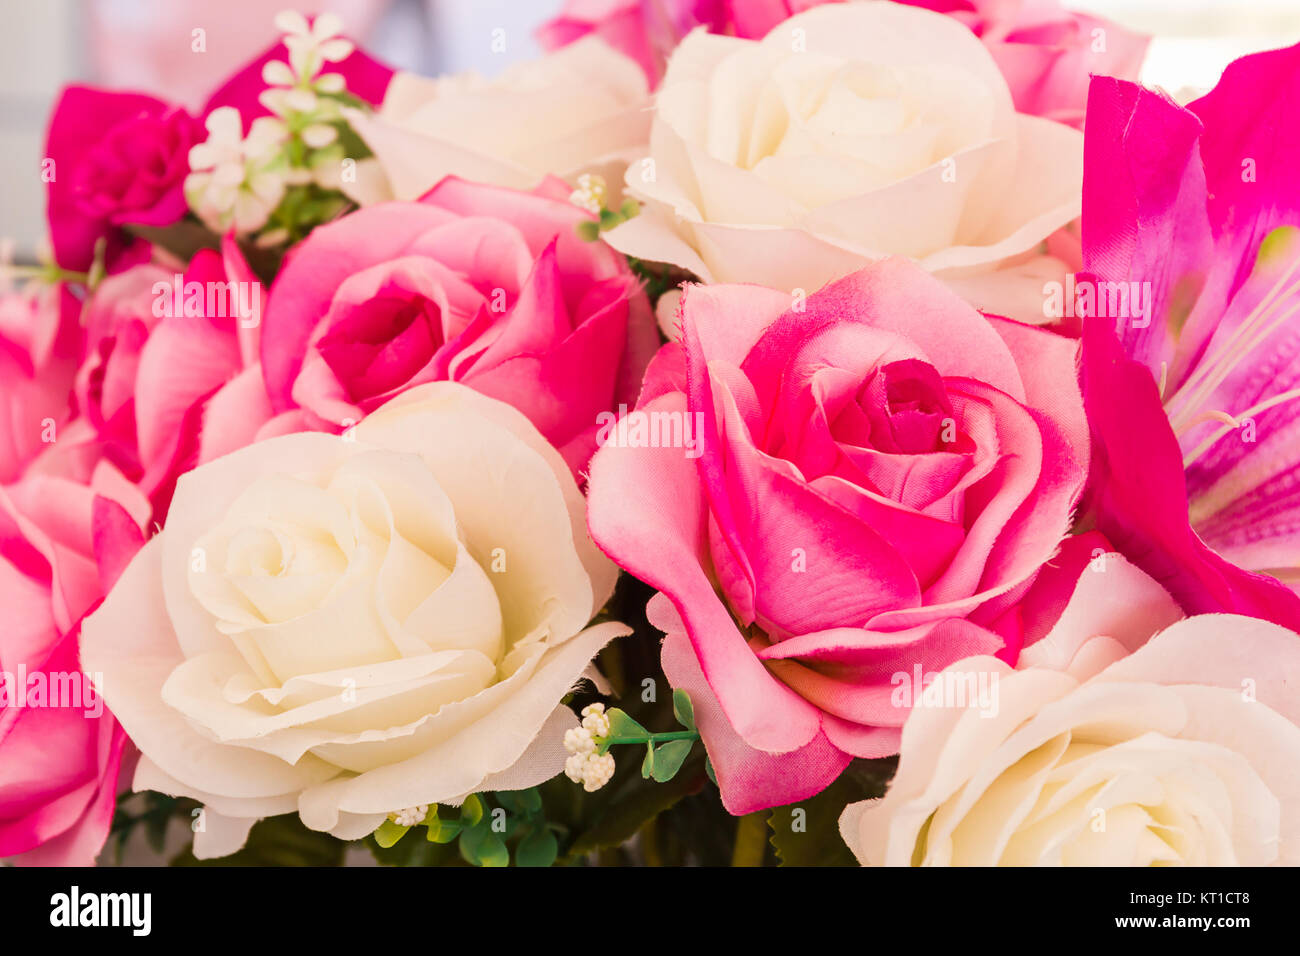 Pink And White Fake Flower Handmade Sewing Flowers Stock Photo